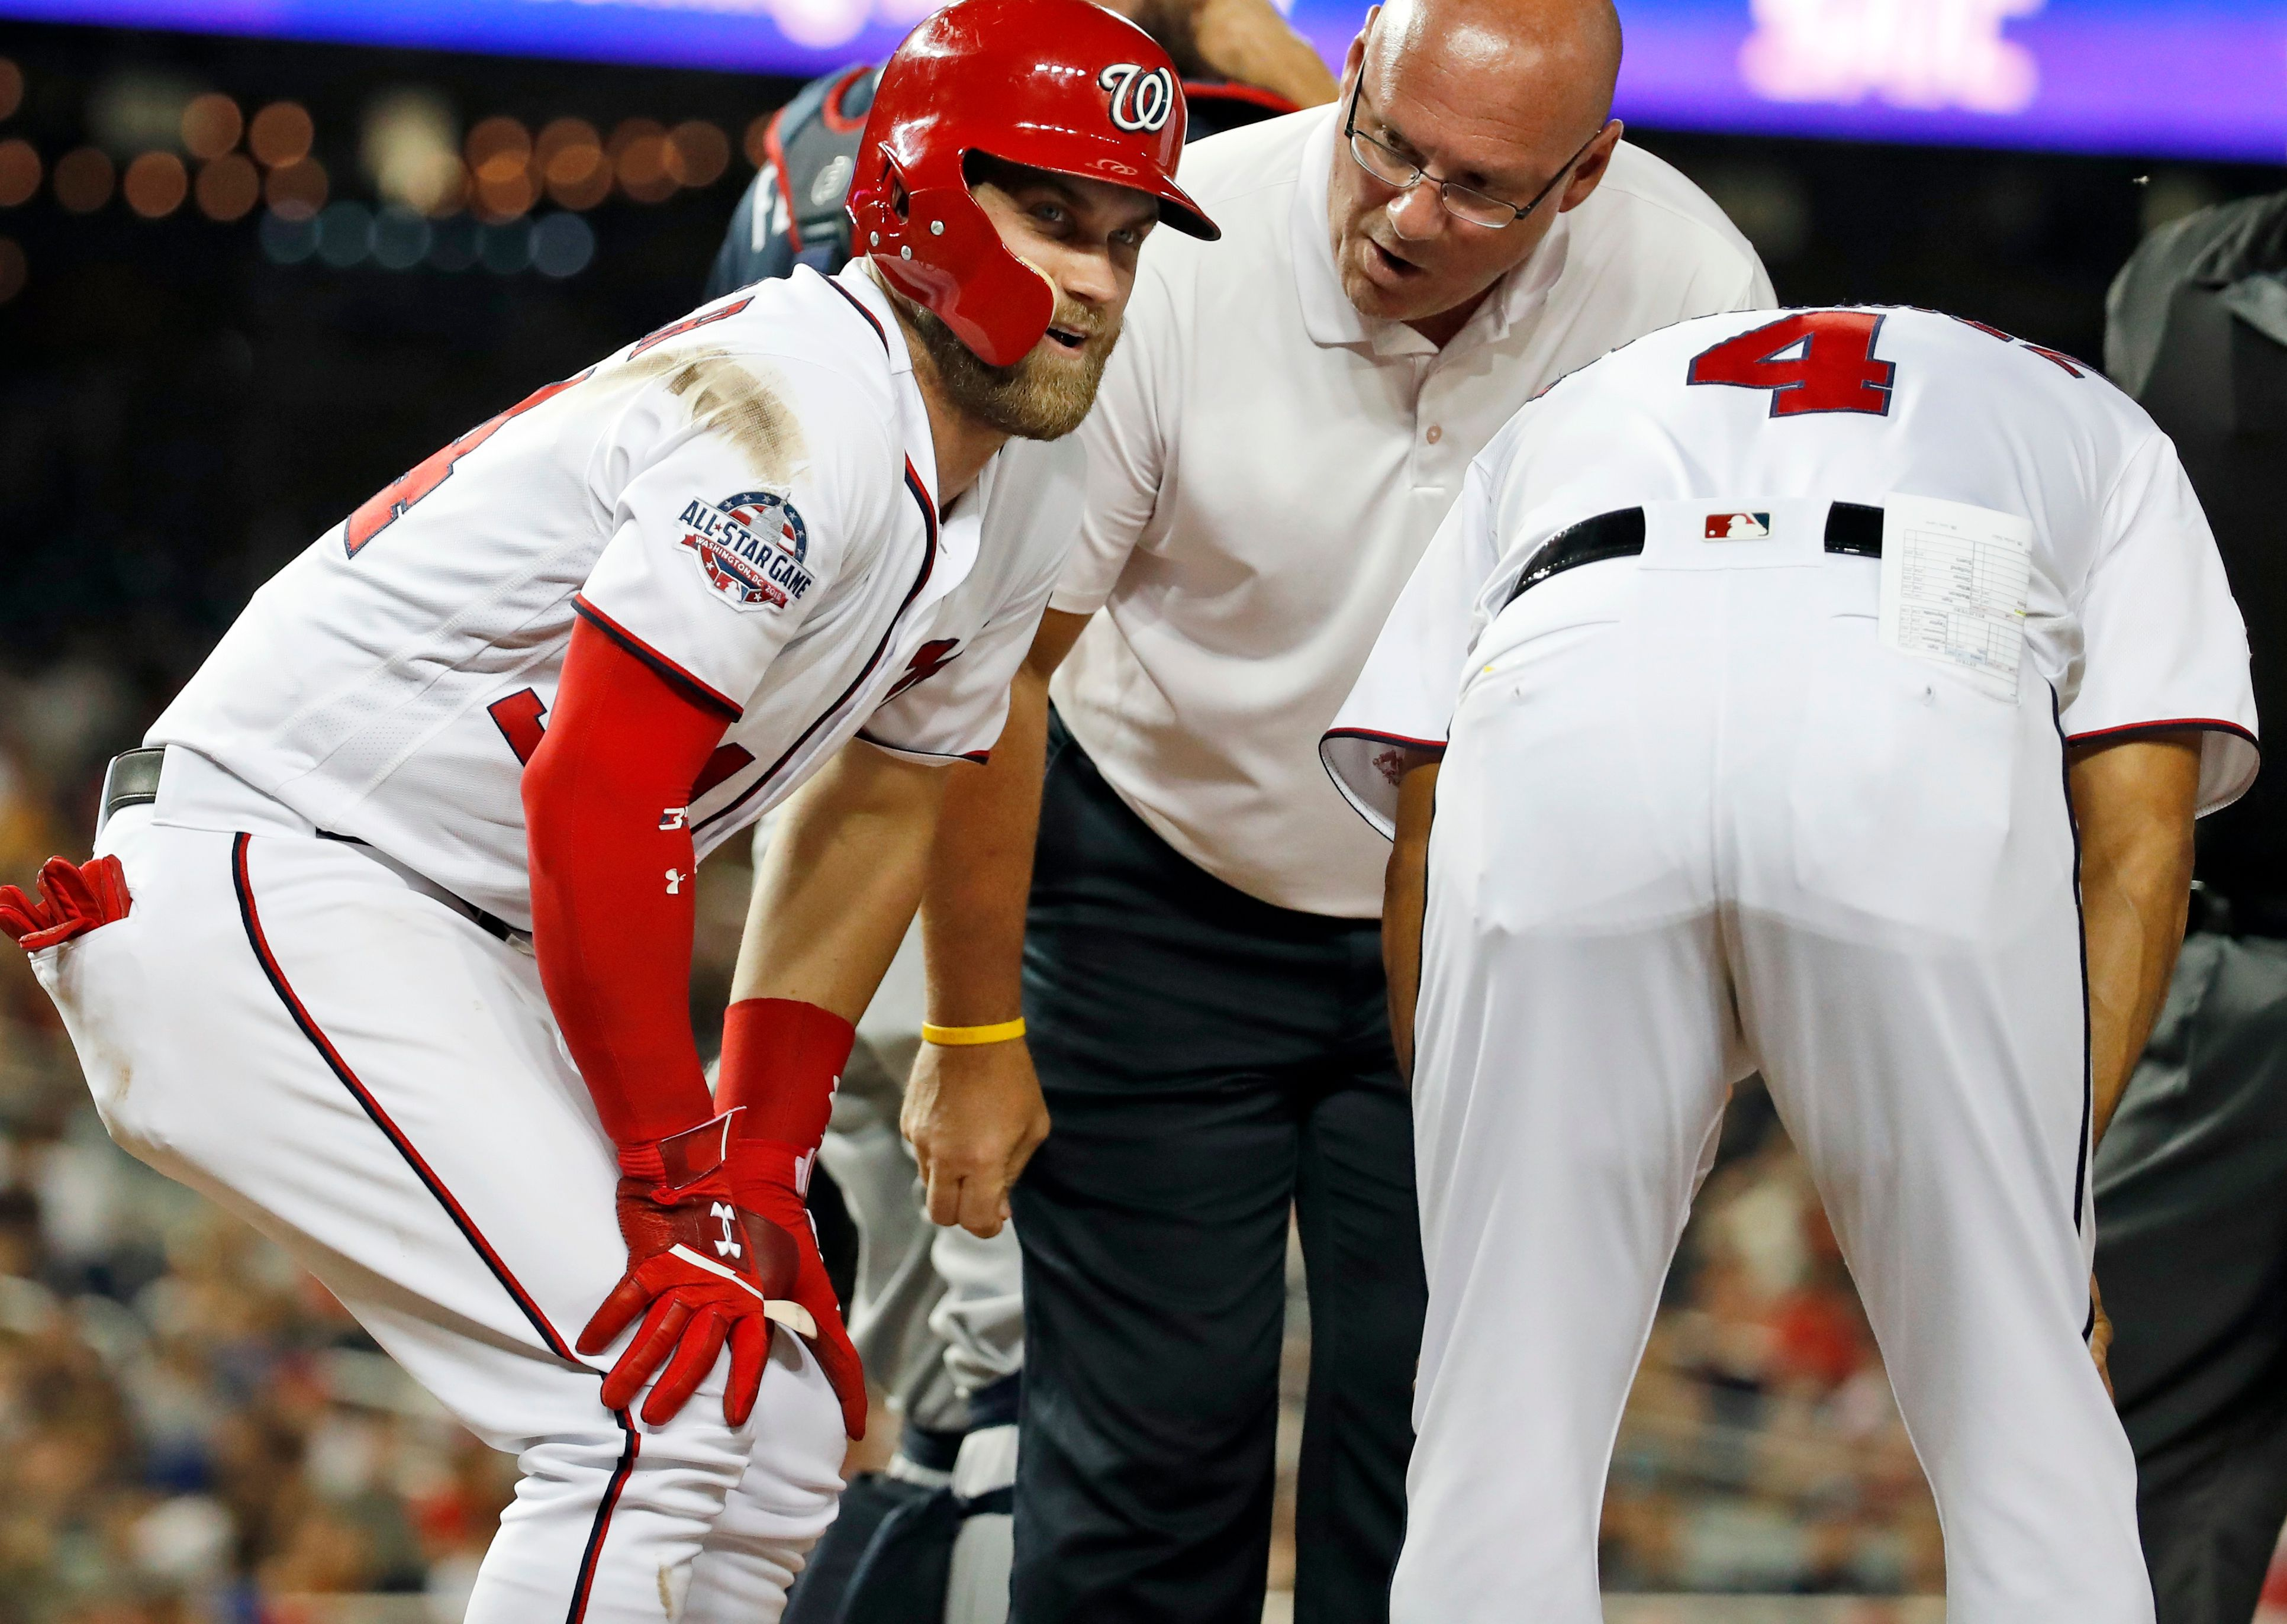 Nationals' Bryce Harper scratched with right knee soreness